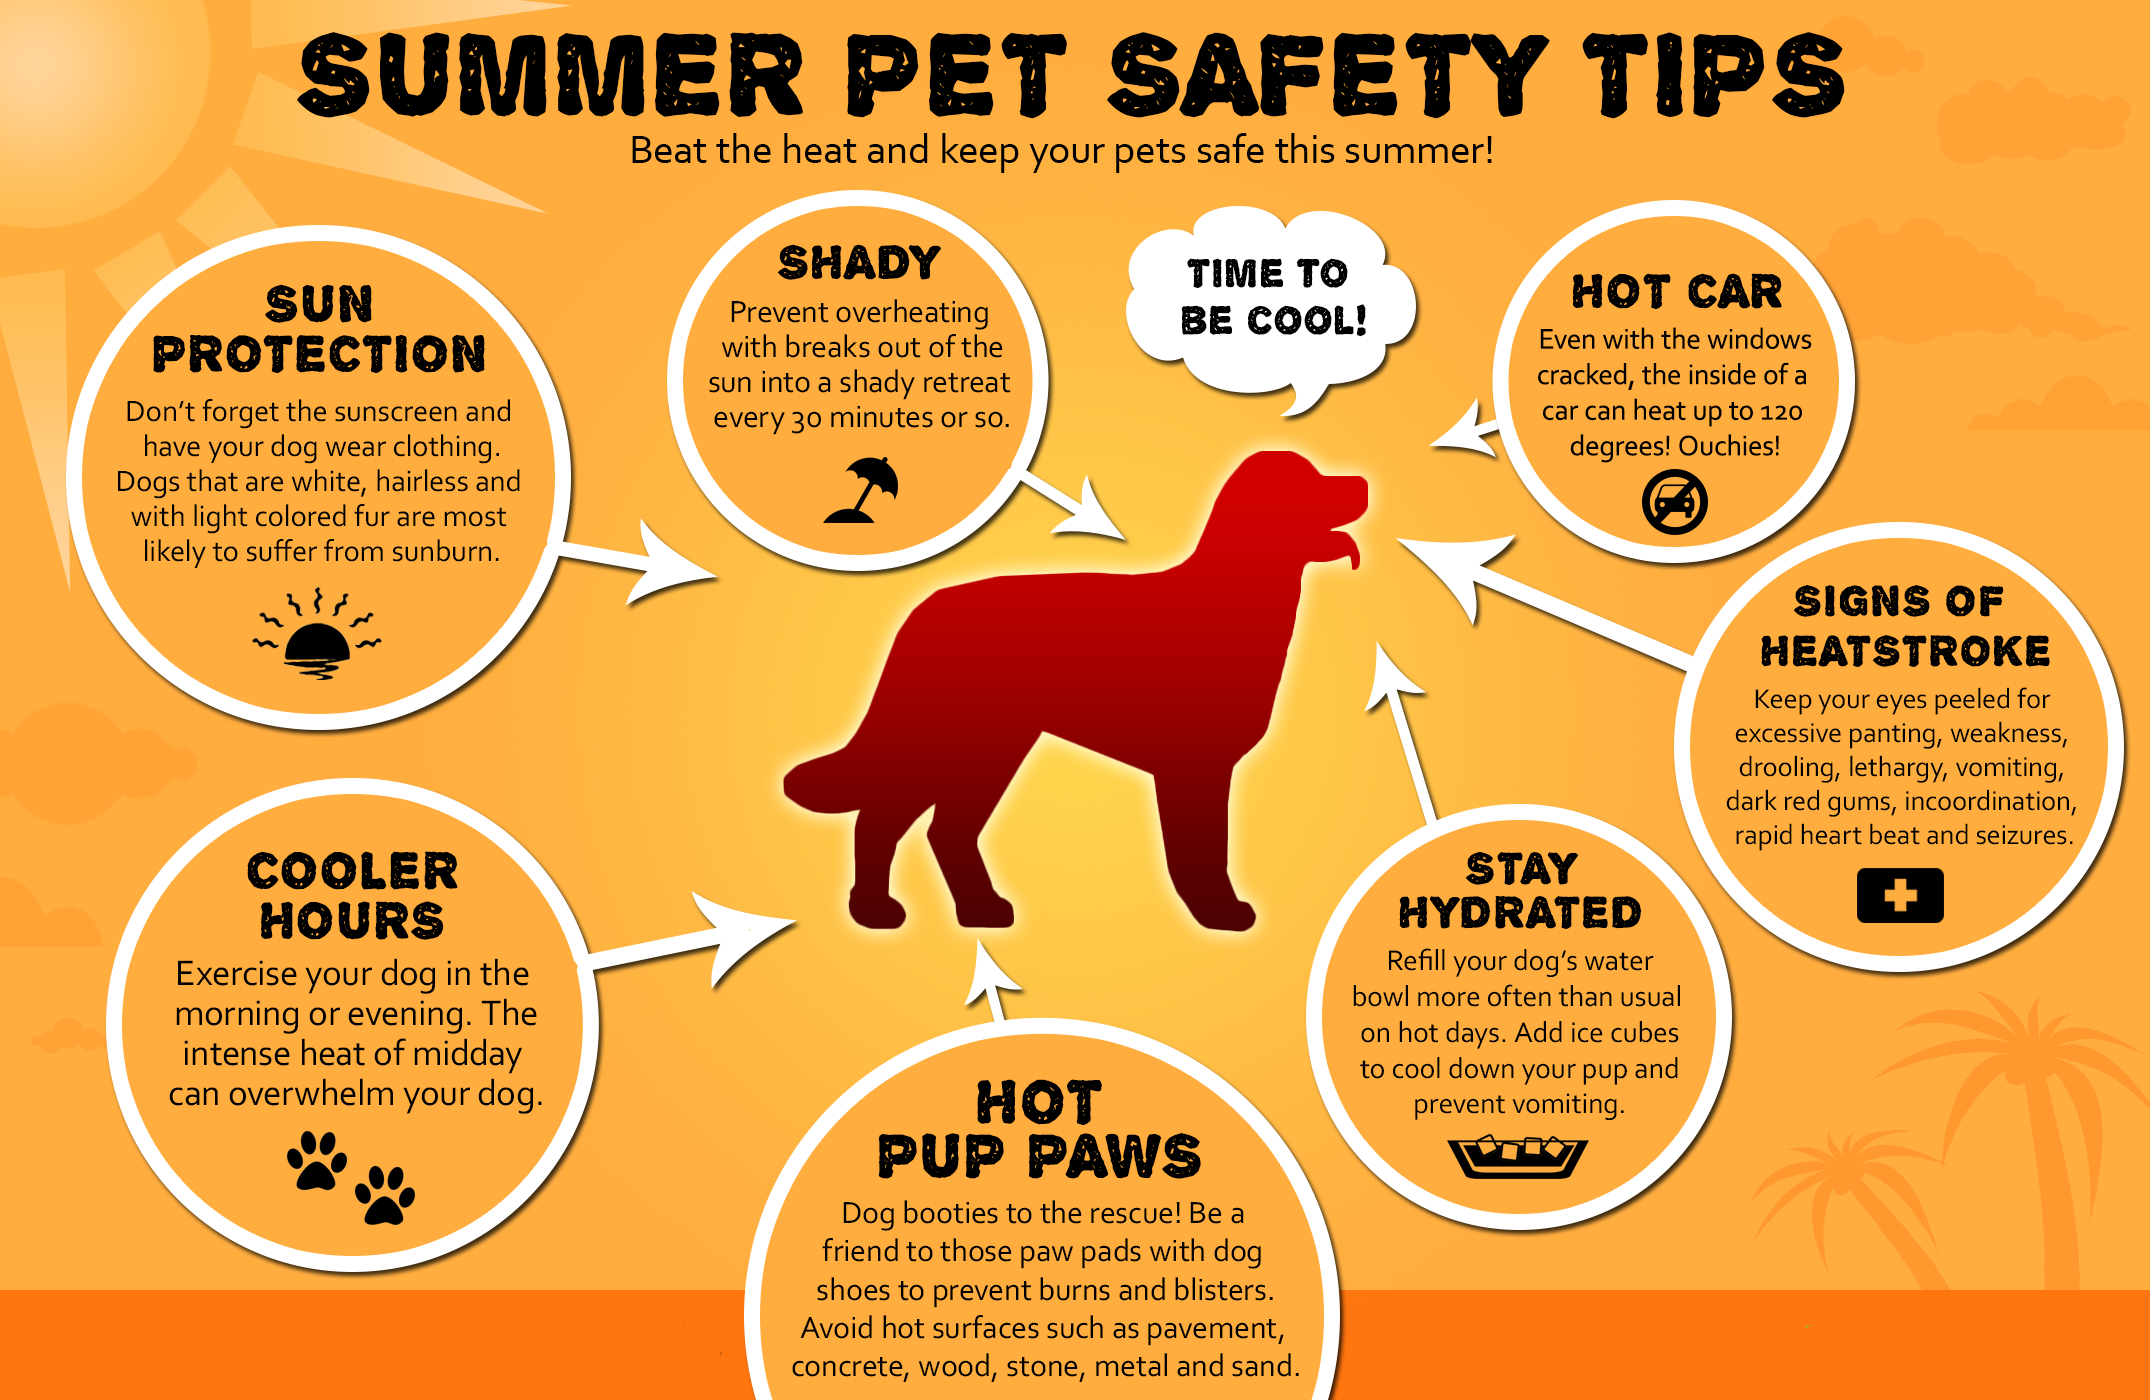 Protect Your Pets During Summer Months Don T Walk Dogs In Hot